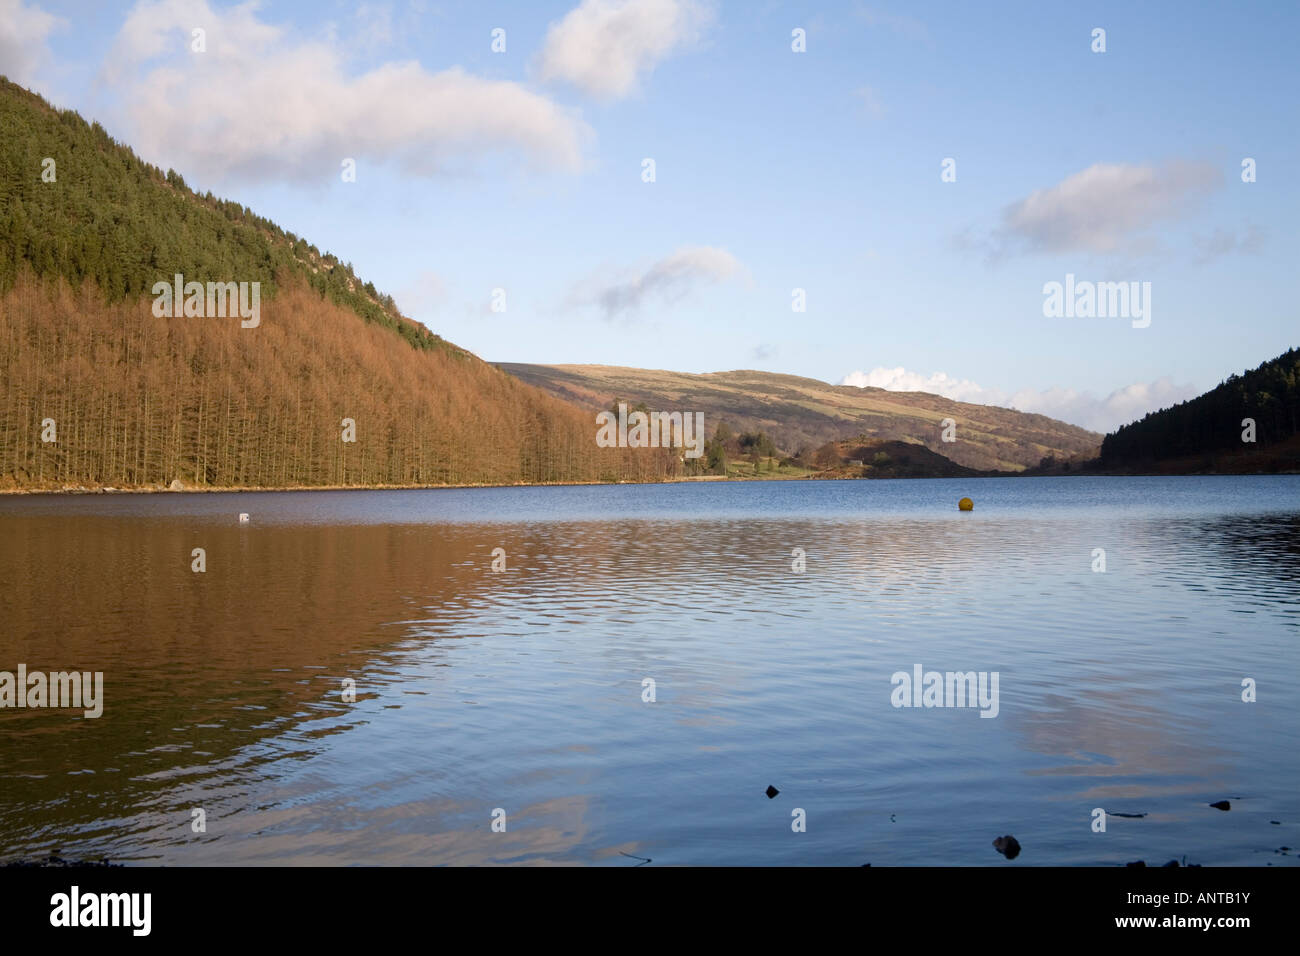 TREFRIW CONWY NORTH WALES UK Looking across Llyn Geirionydd on a lovely calm winters day Snowdonia National Park - Stock Image